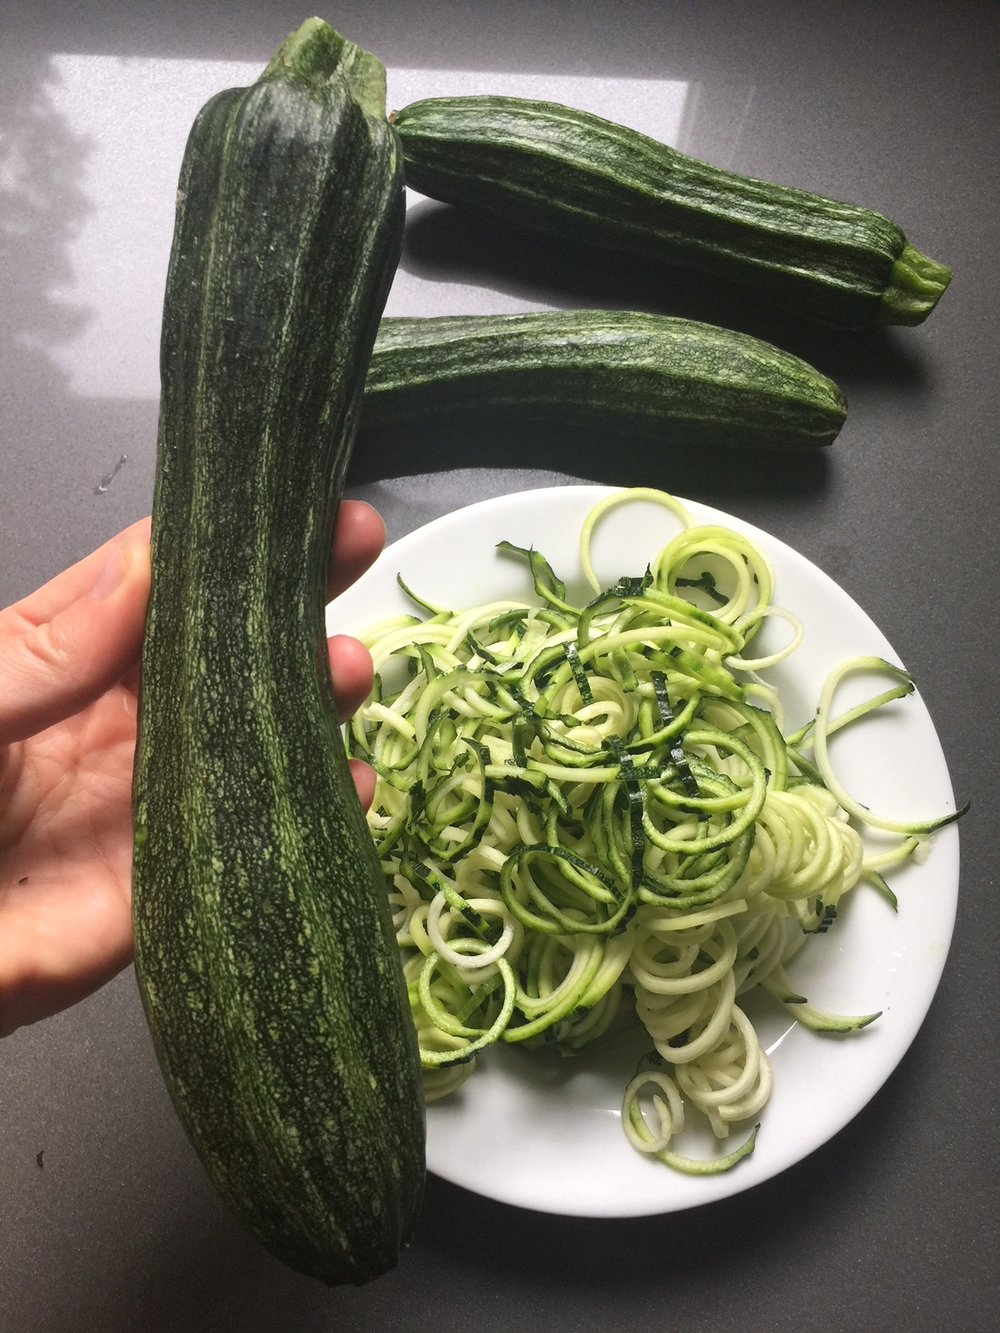 Organic zucchini skin is full of goodness, leave it on!